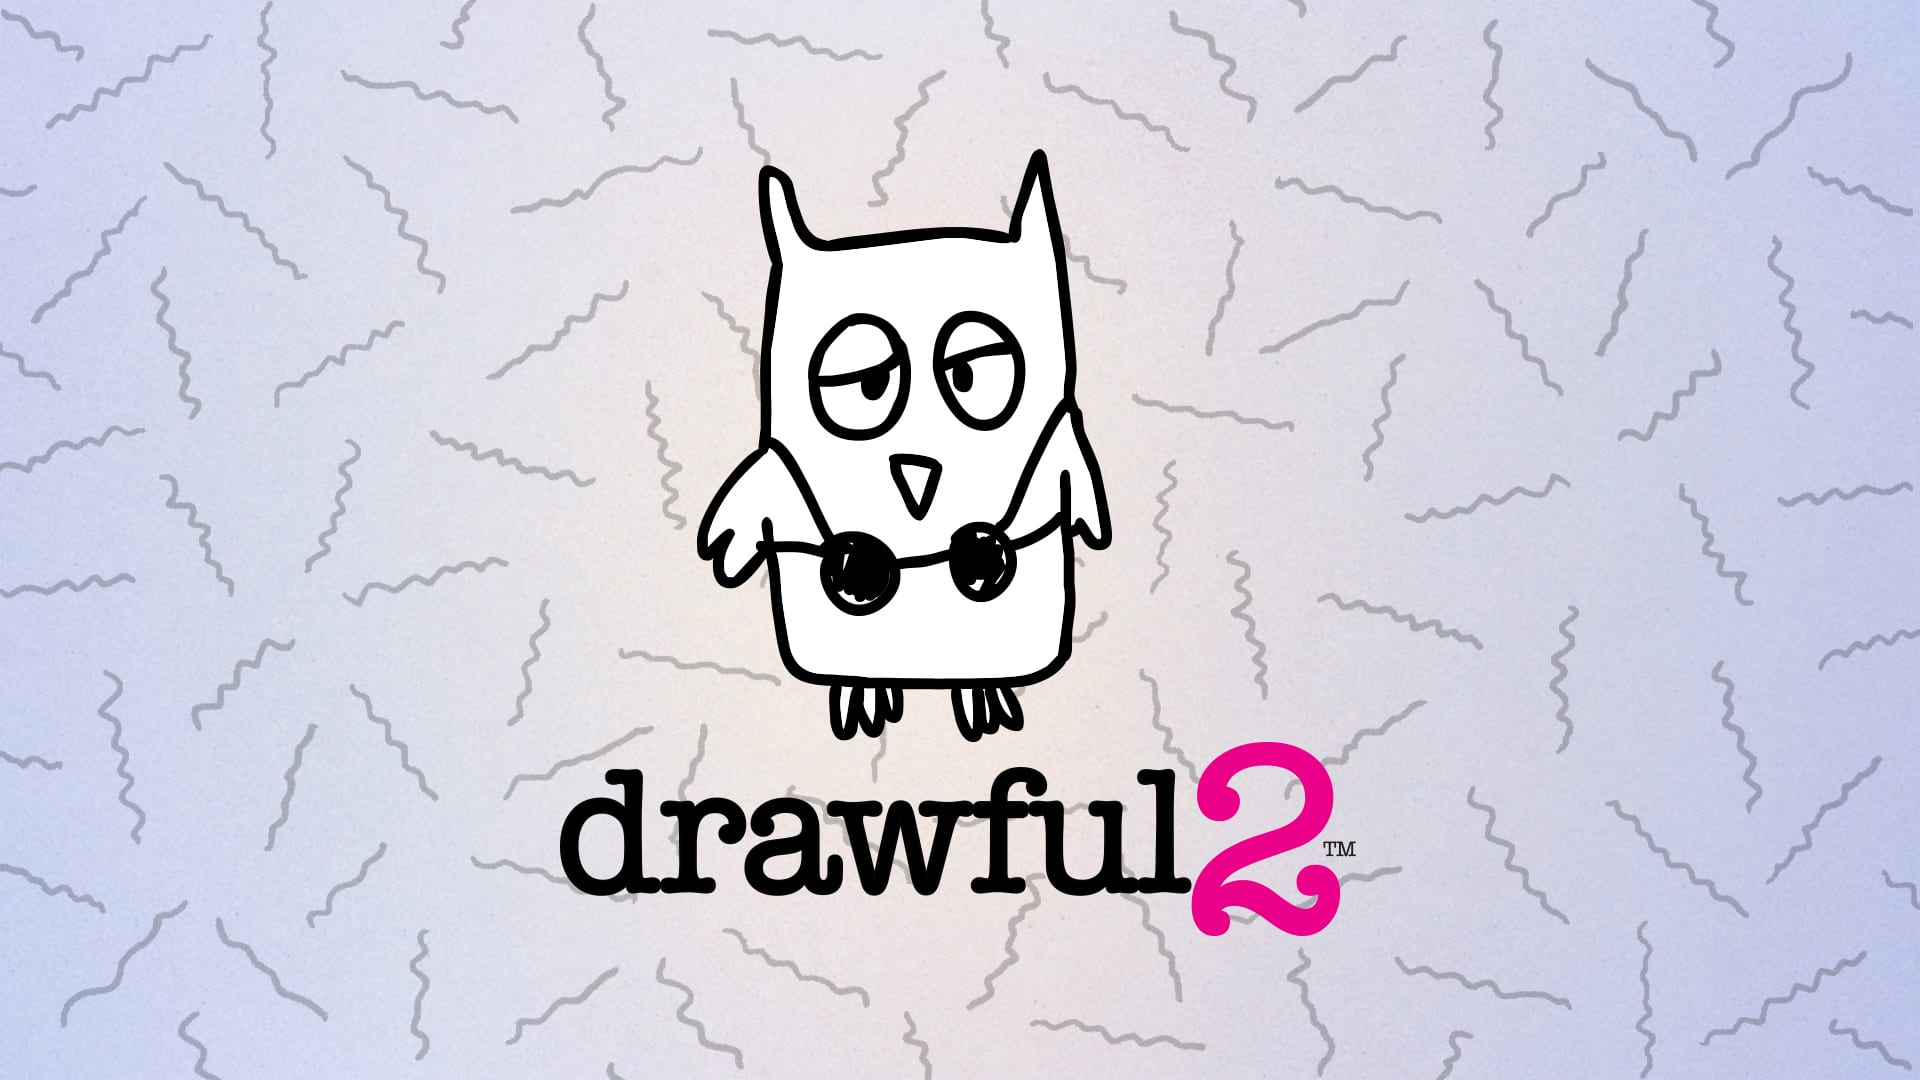 Drawful 2 is Free on Steam For the Next Three Weeks